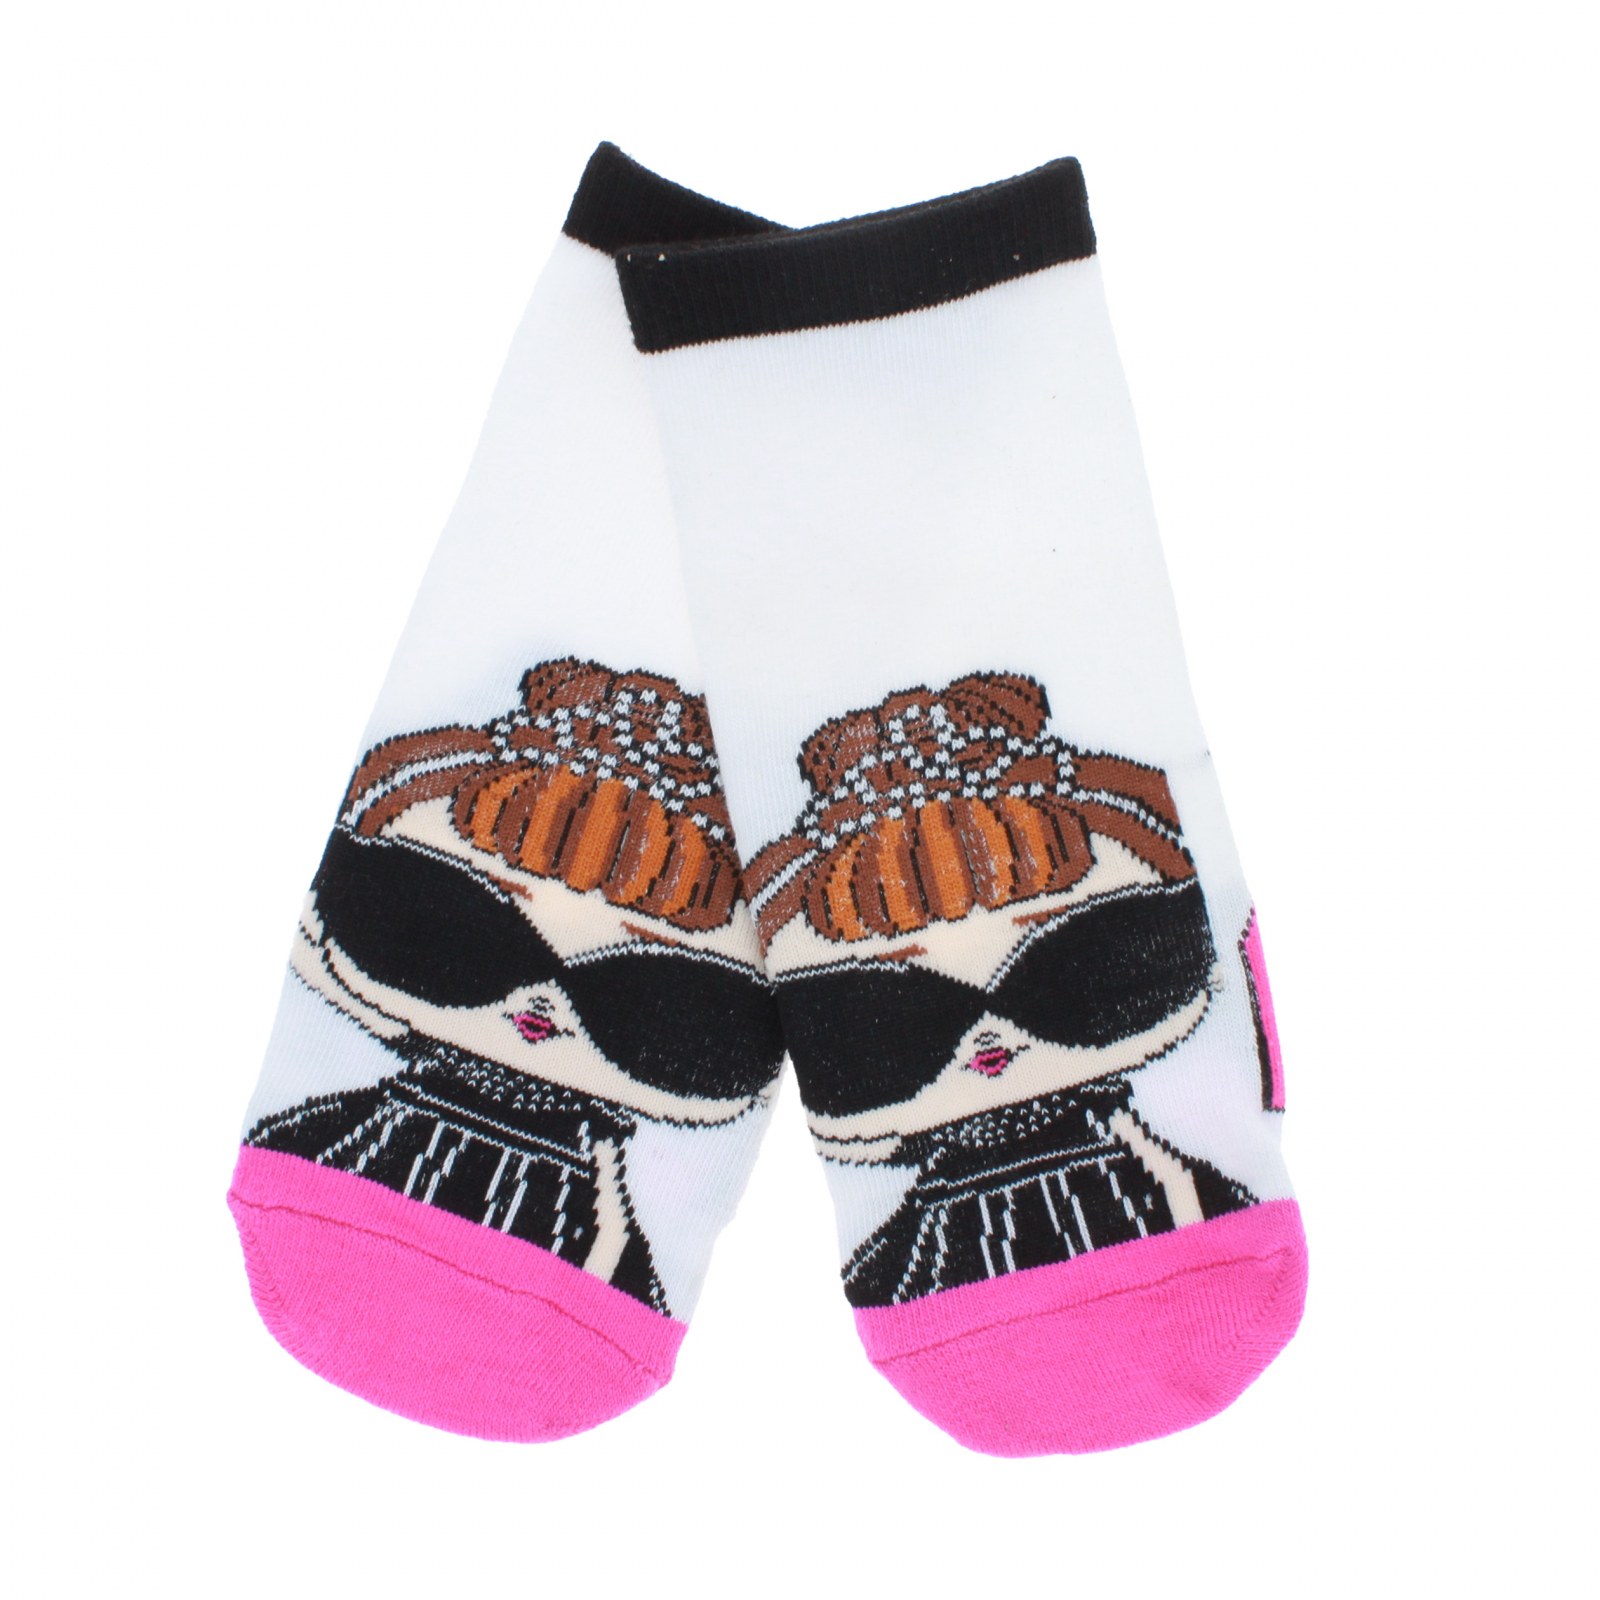 LOL Surprise Girls Ankle Socks Size 6-8.5 - Pink